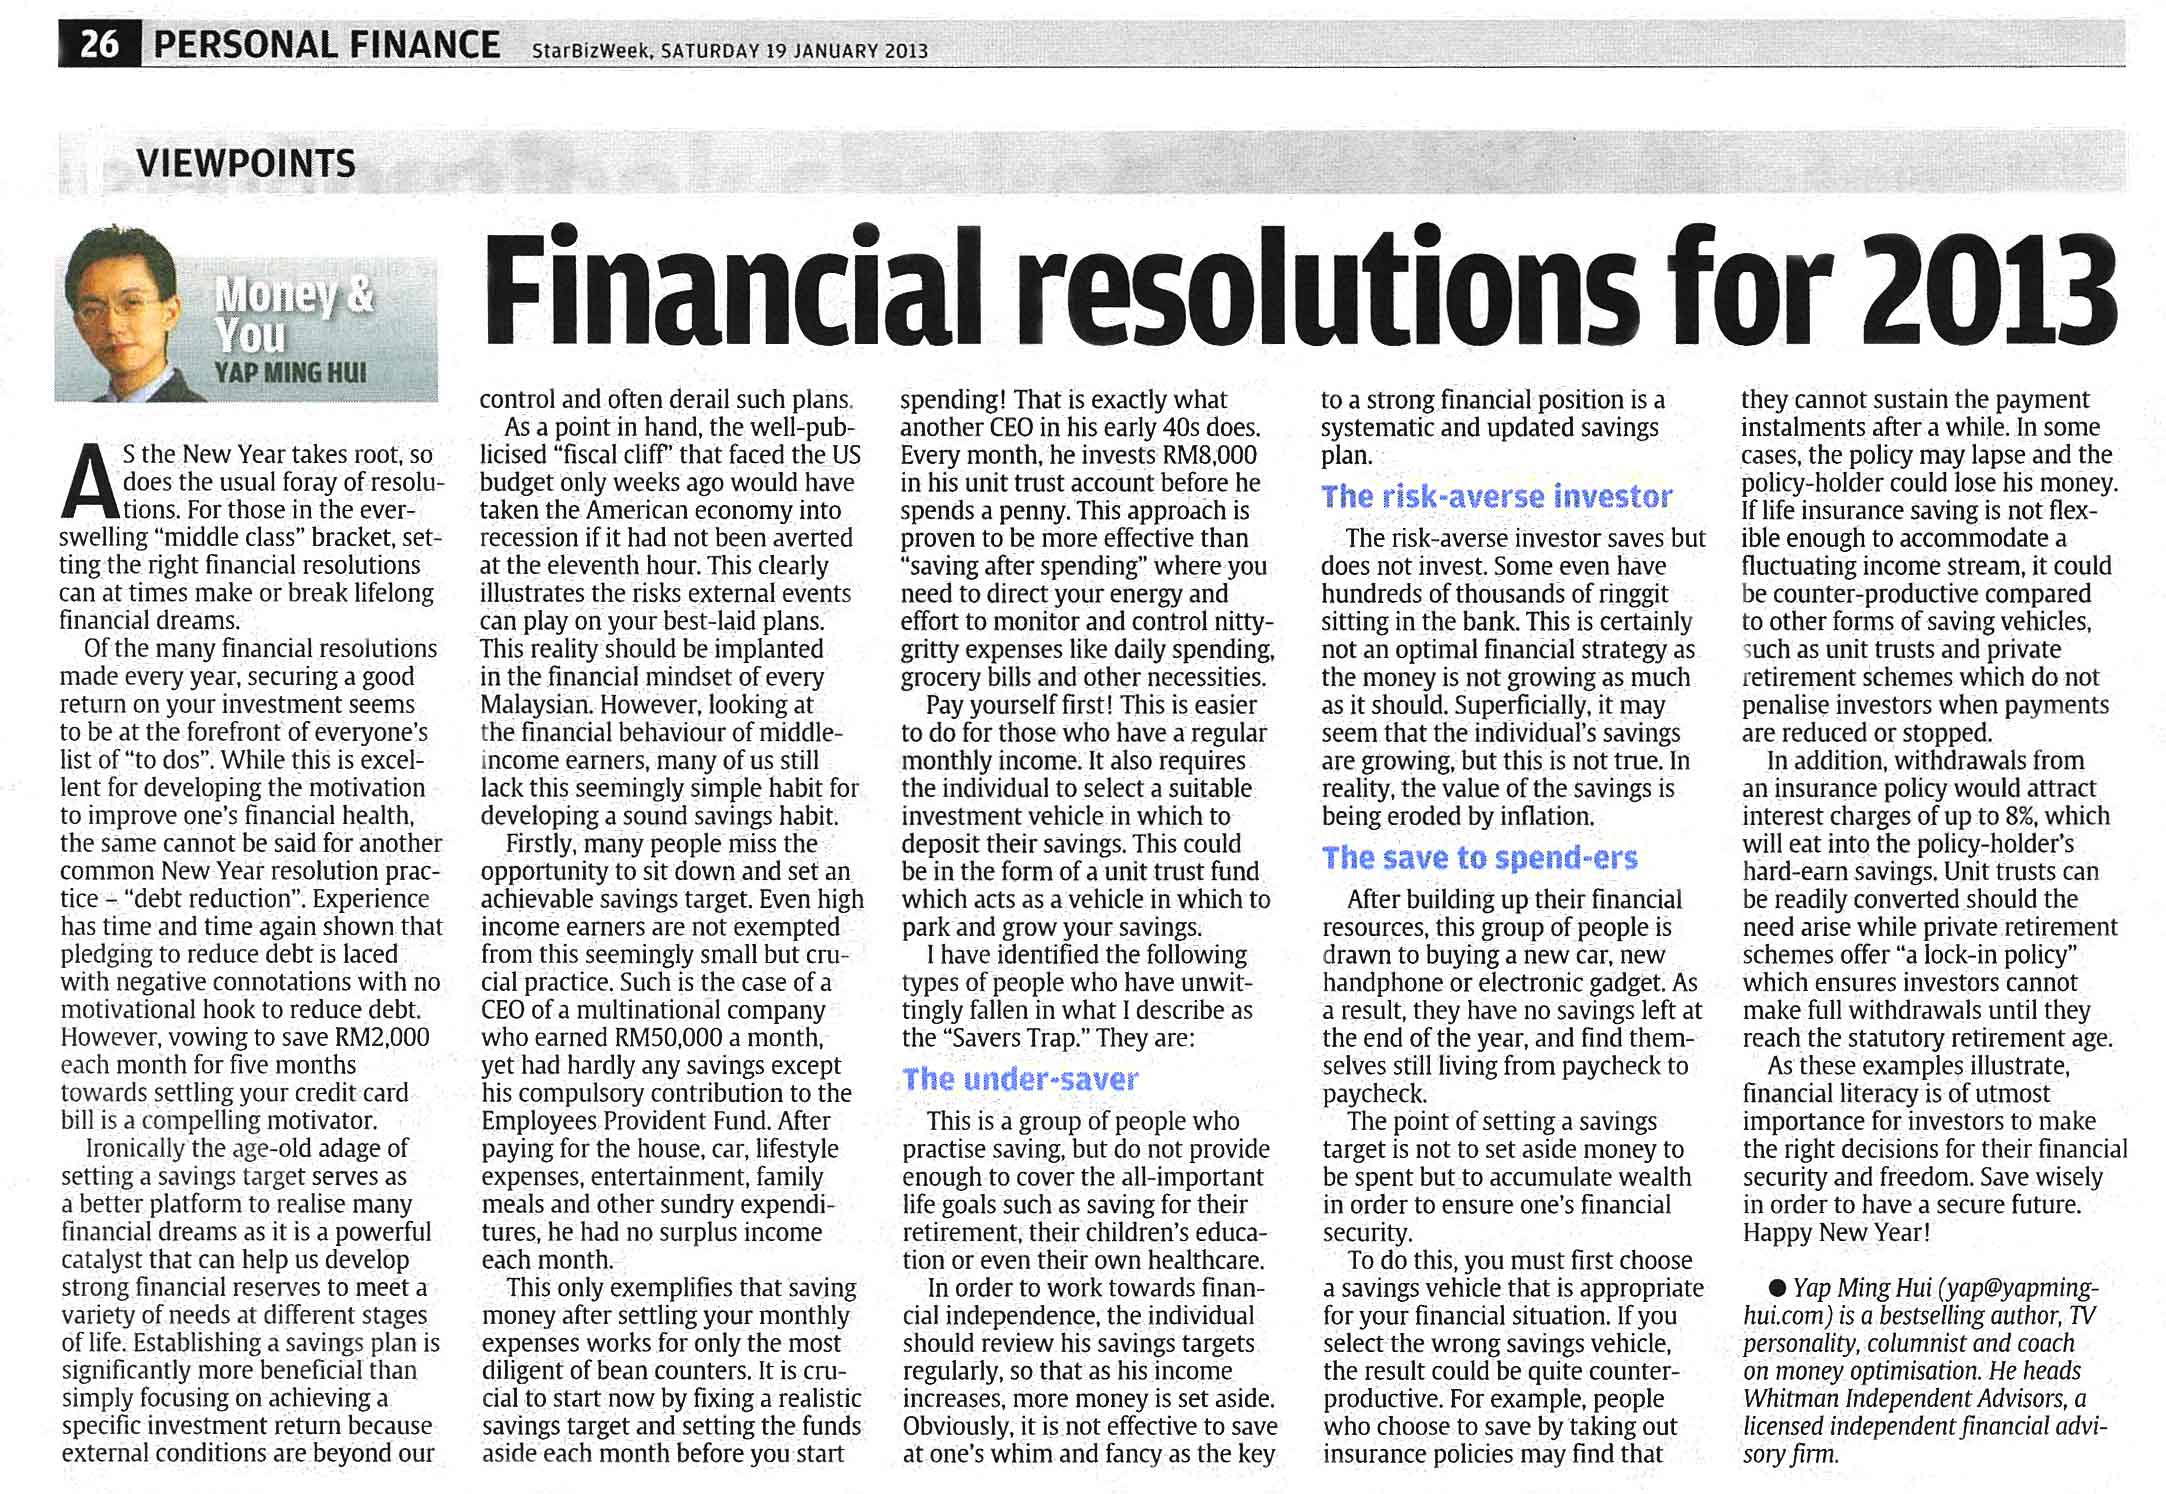 Financial Resolutions for 2013 - 19 Jan 2013